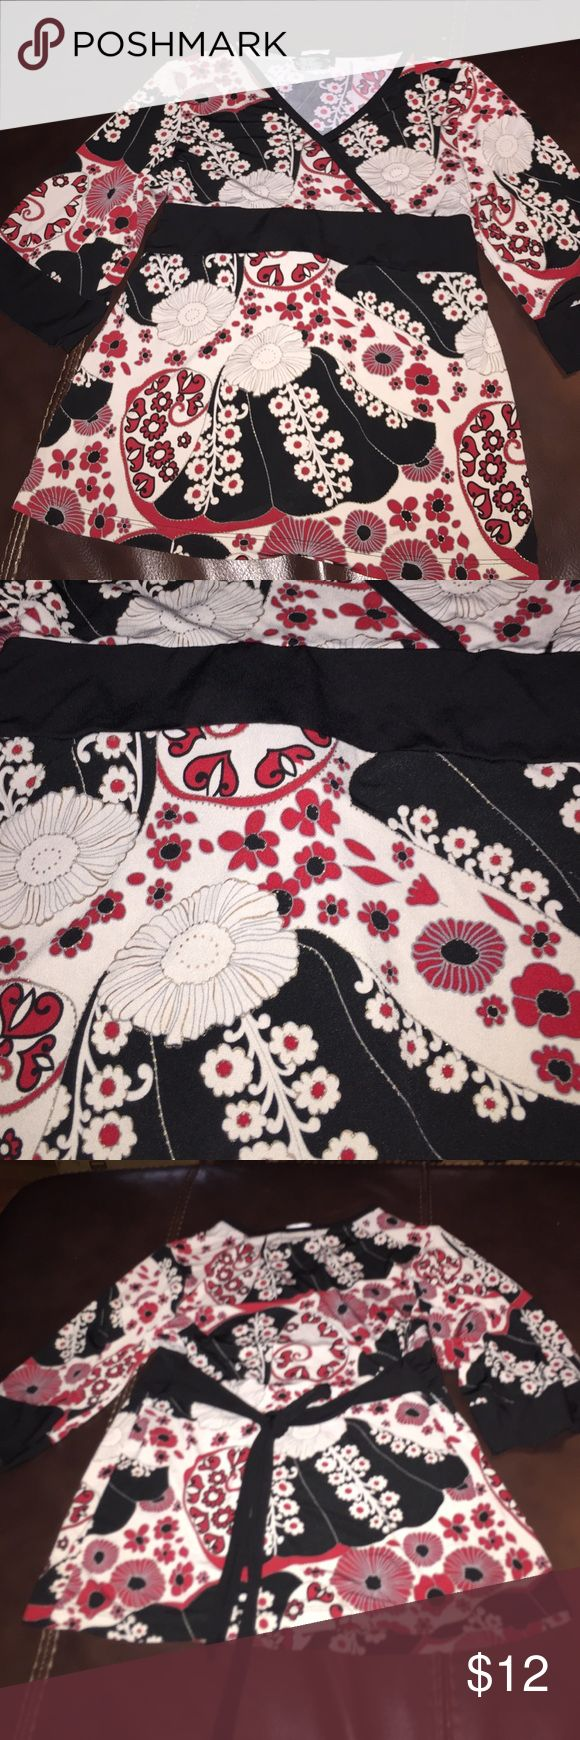 Speechless Top So Cute XL Girls Top with tie in the Back. Cream, Black, Red and a bit Gold trim around flowers. V Neck. Speechless Shirts & Tops Blouses